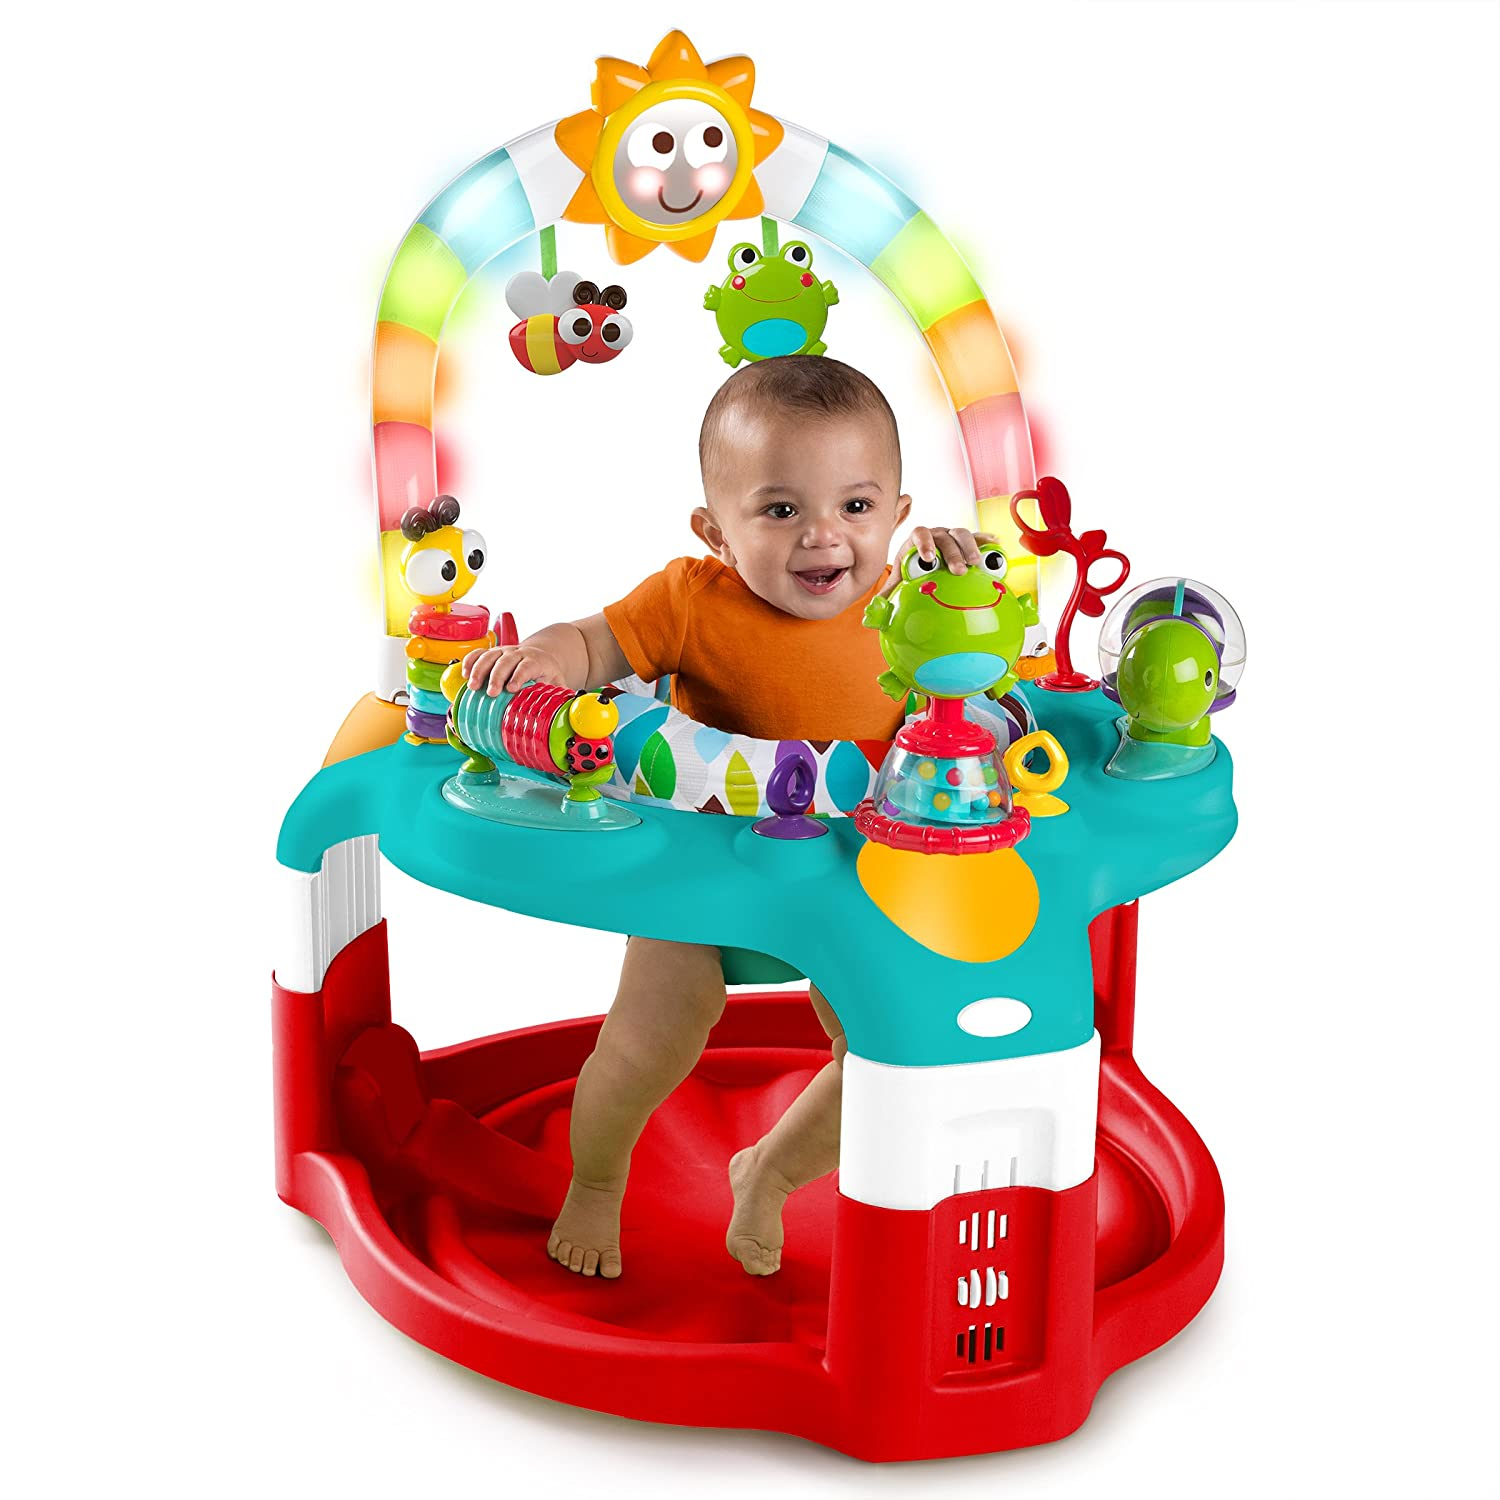 Amazon Bright Starts 2 in 1 Silly Sunburst Activity Gym and